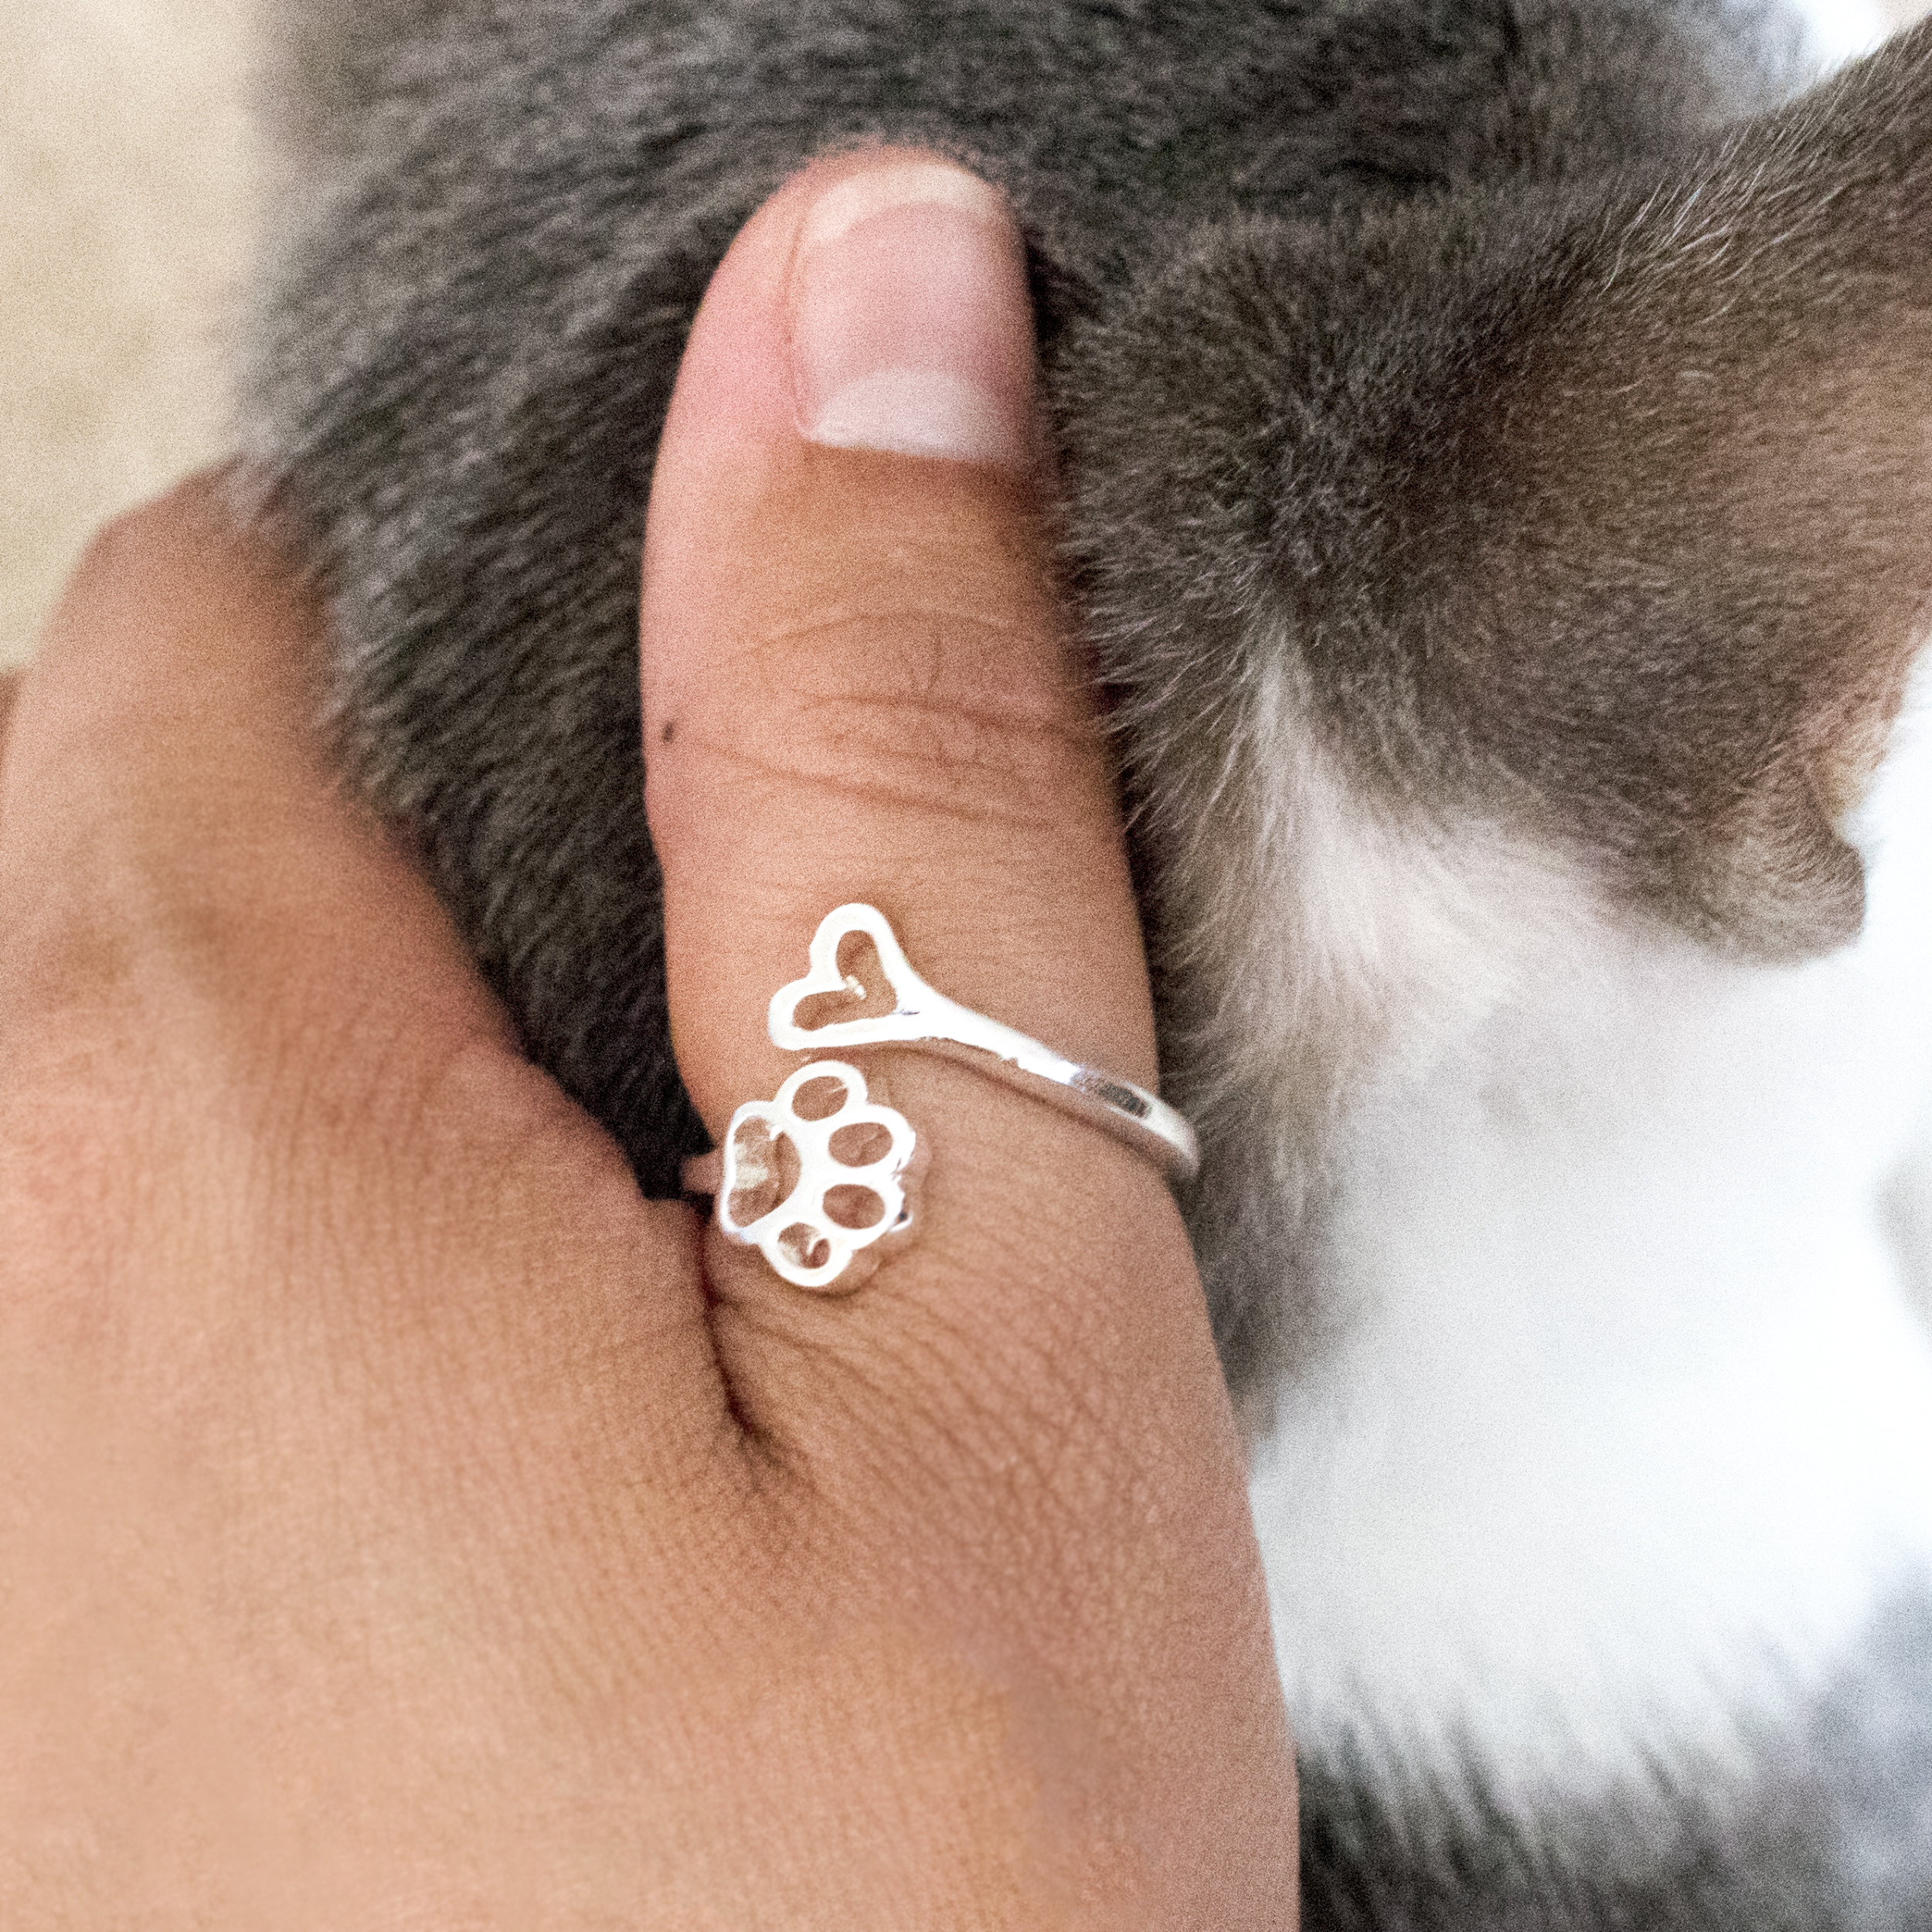 aed43a424baf7 Always By My Heart Adjustable Ring